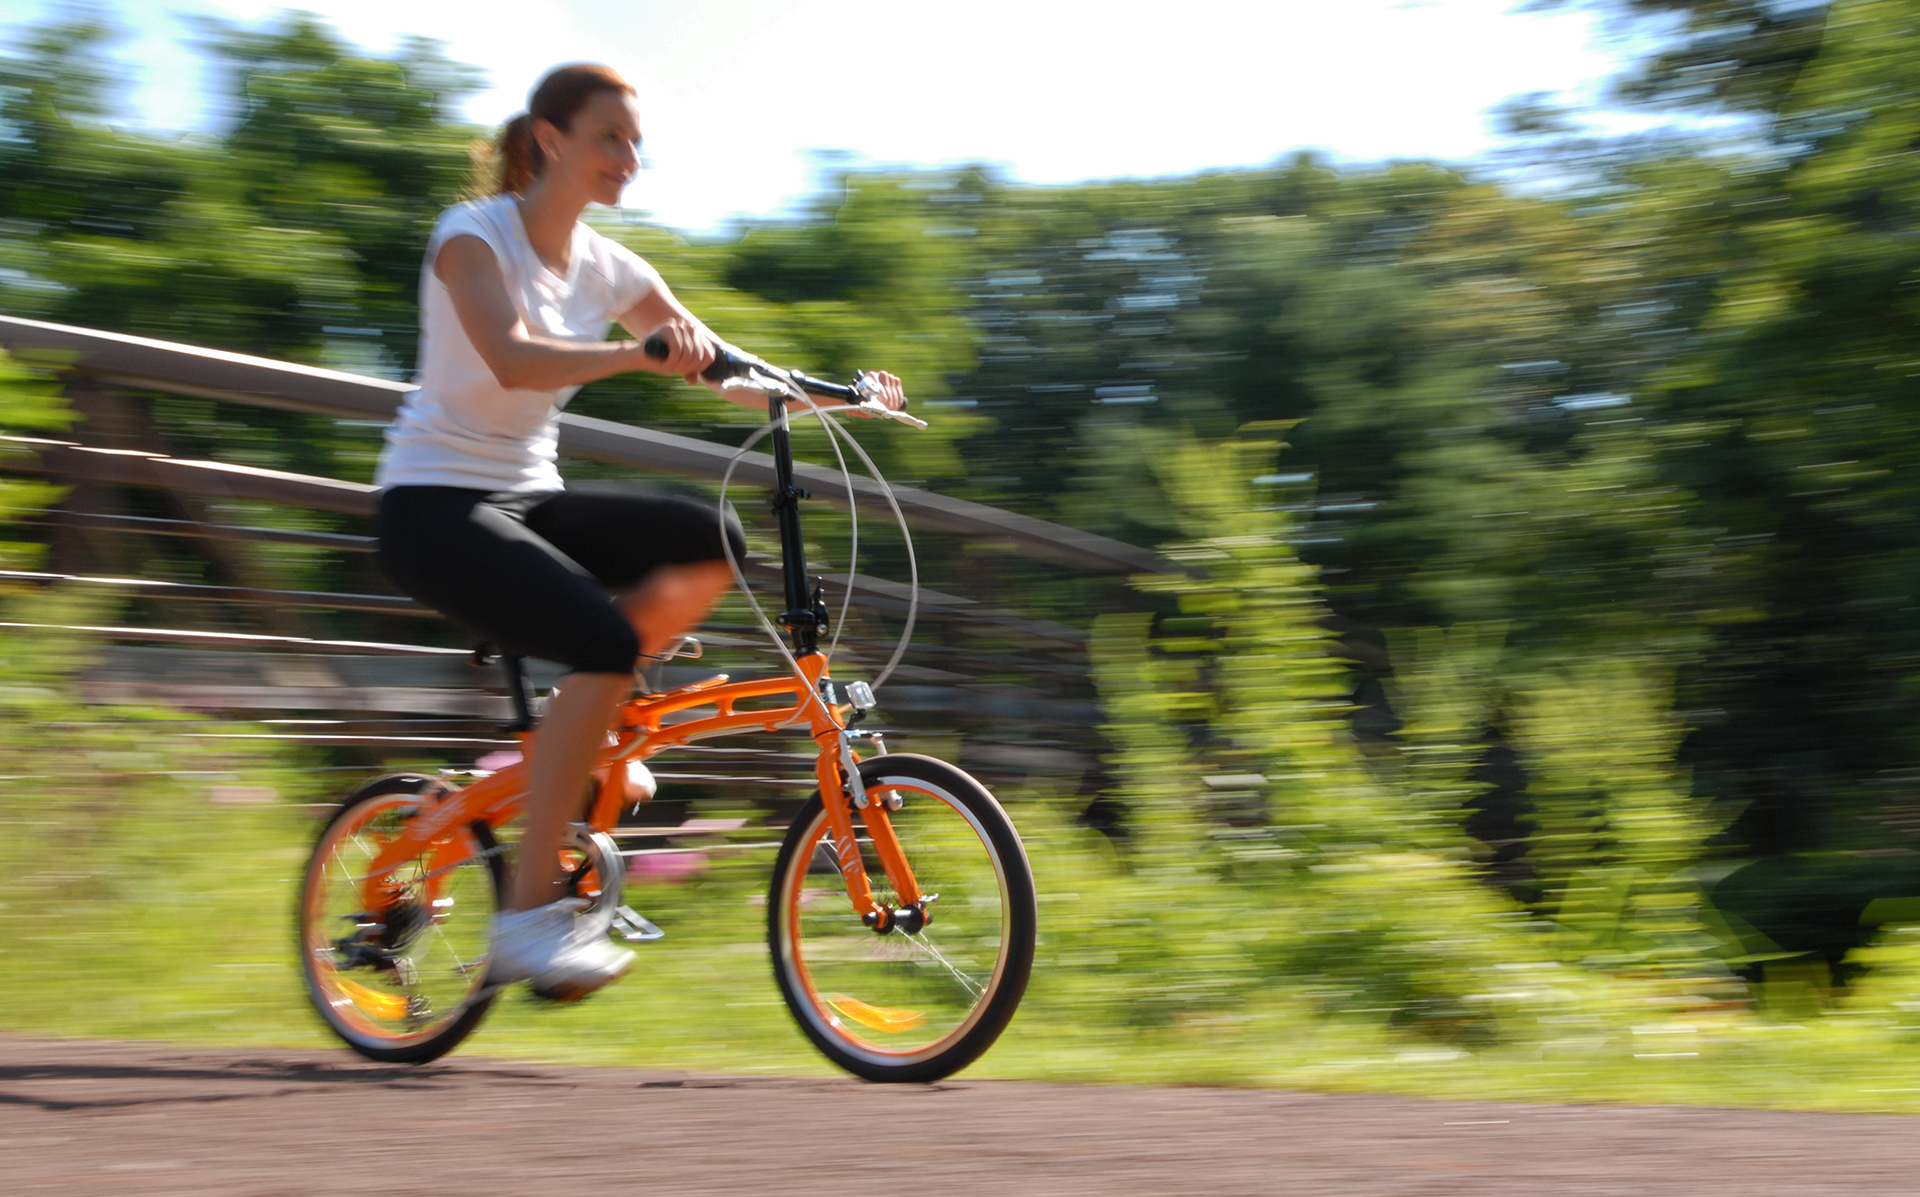 Best Places to Bike in New Jersey